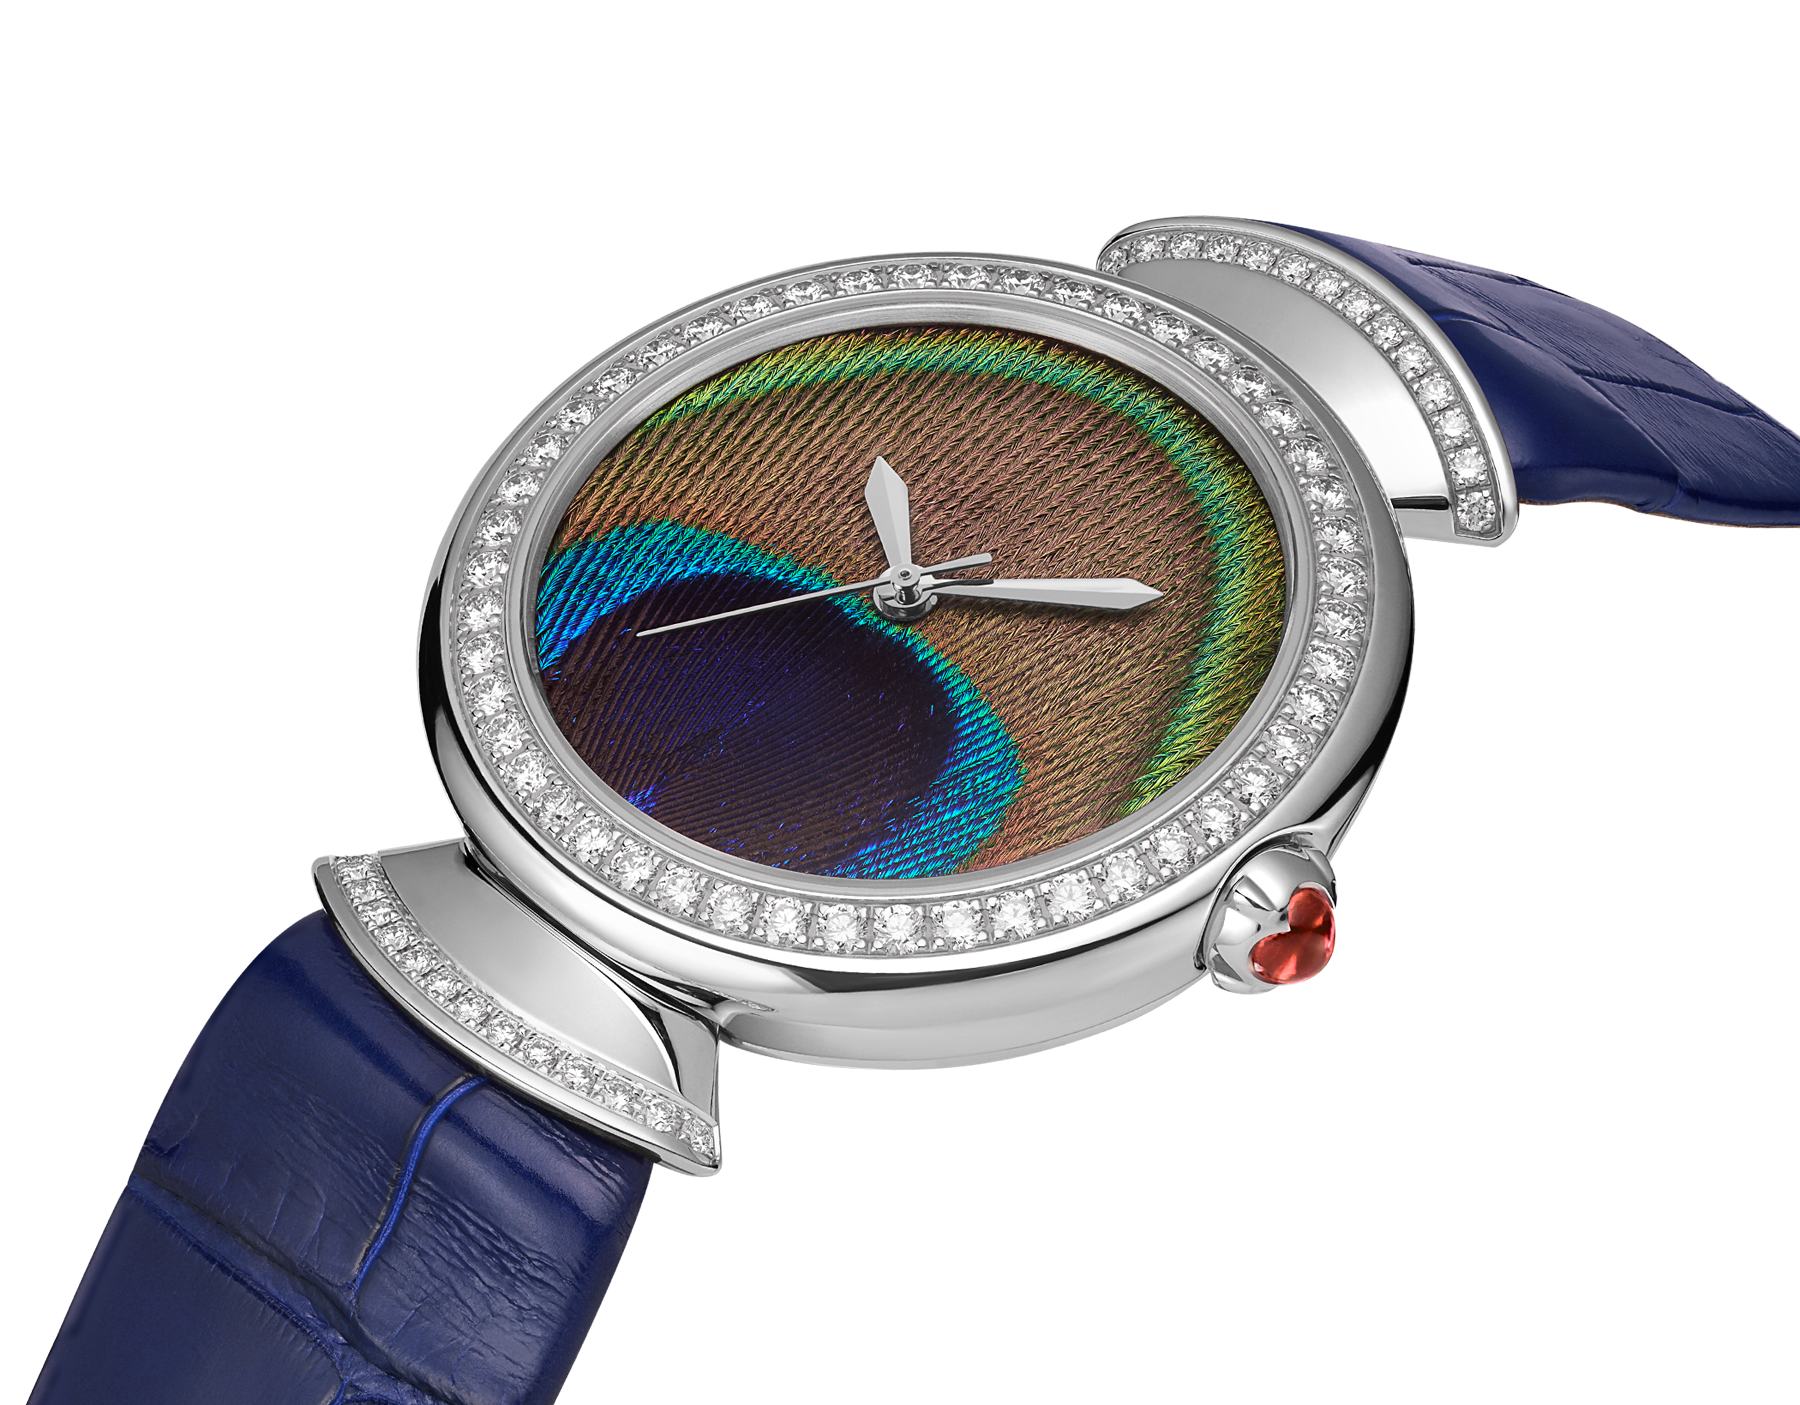 DIVAS' DREAM watch with mechanical manufacture movement, automatic winding, 18 kt white gold case, 18 kt white gold bezel and fan-shaped links both set with brilliant-cut diamonds, natural peacock feather dial and blue alligator bracelet 103263 image 3